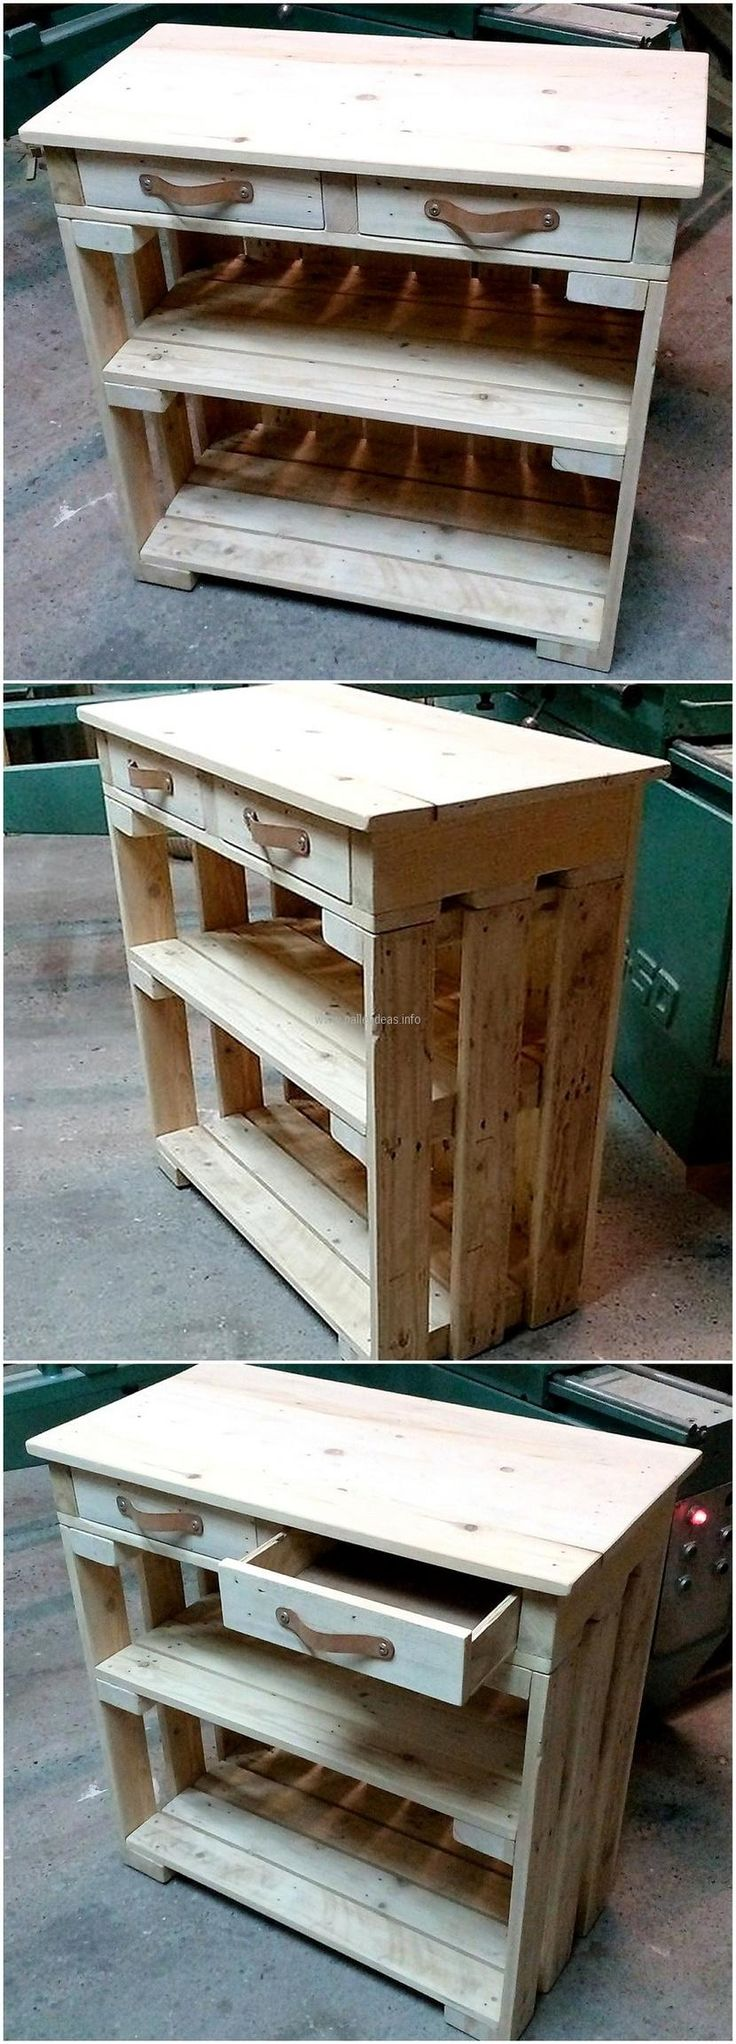 reclaimed pallet entrywal table idea